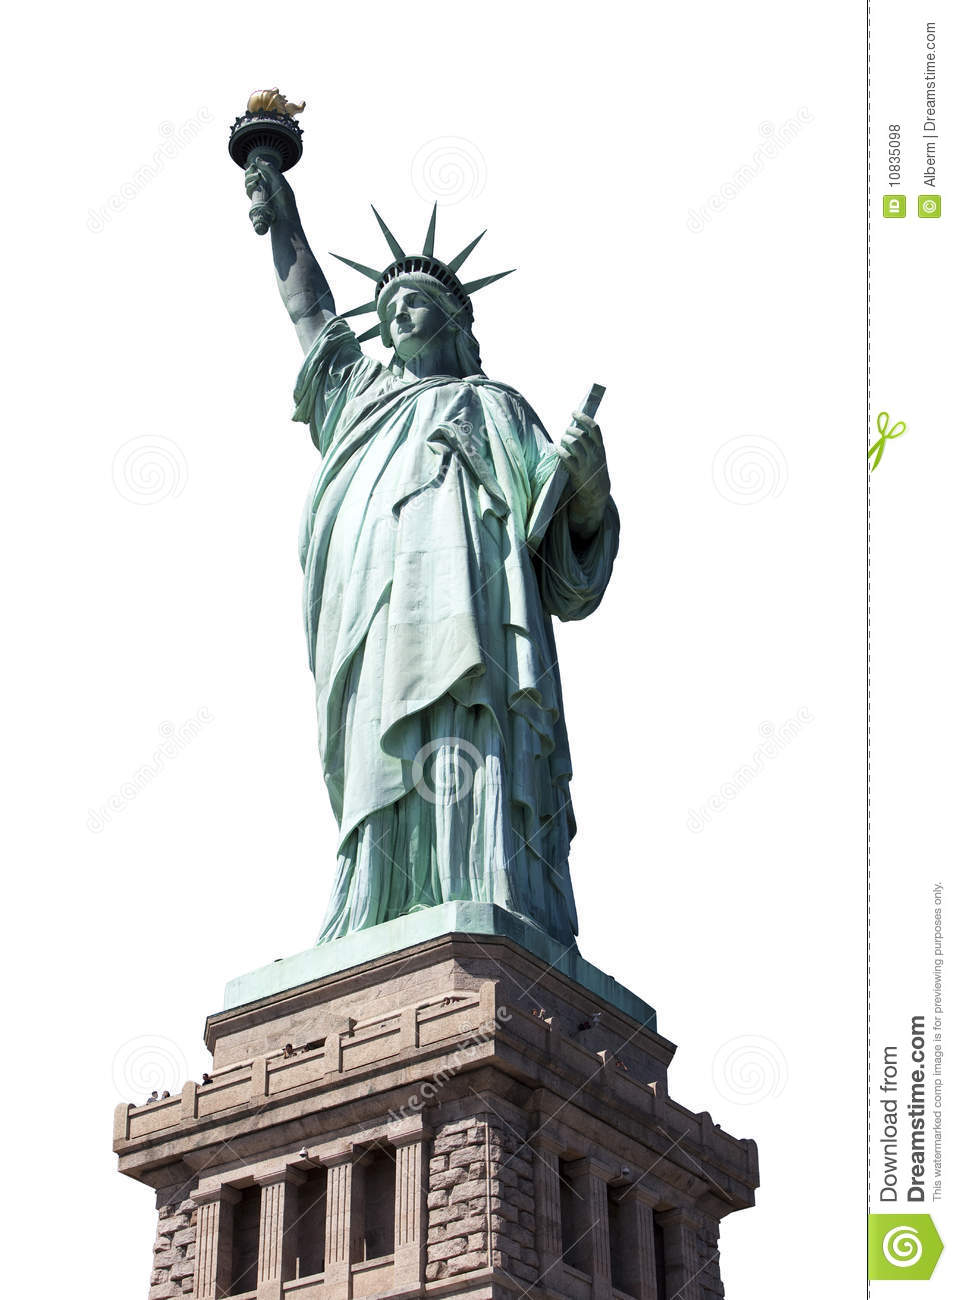 Stock Image Template Statue Of Liberty Royalty Free Stock Photos Image 10835098